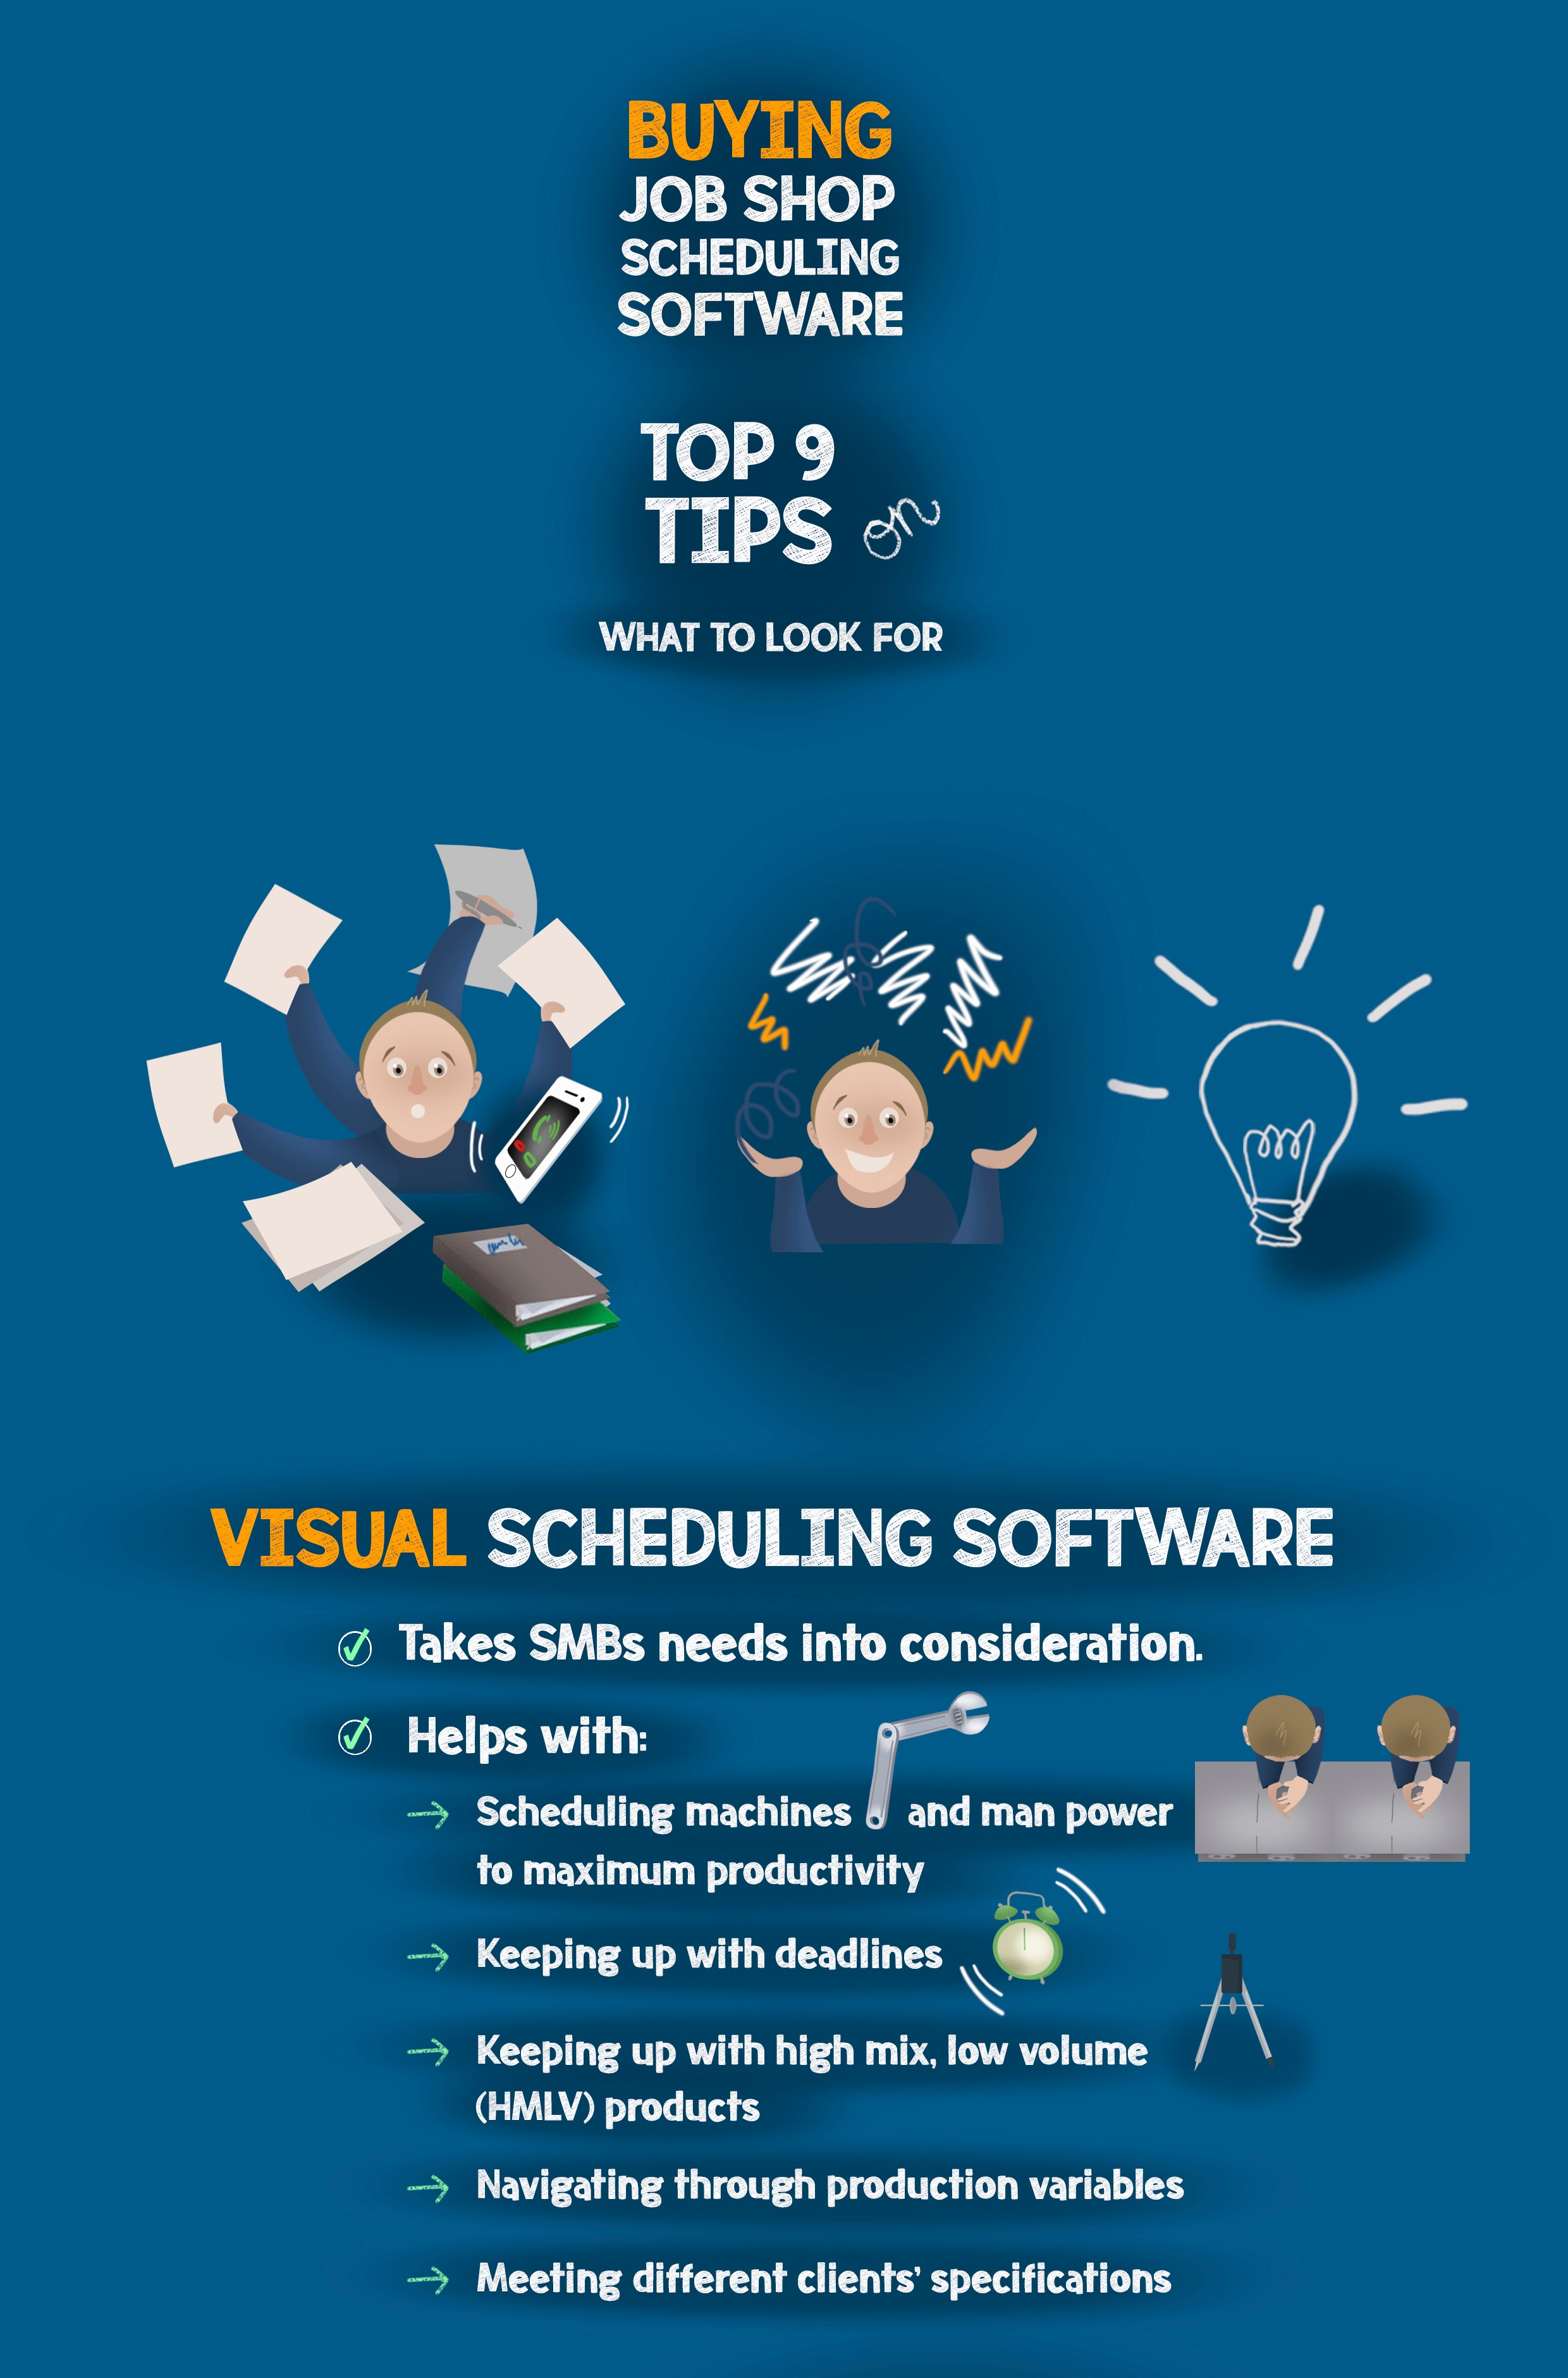 Infographic: Top 9 tips on buying job shop scheduling software